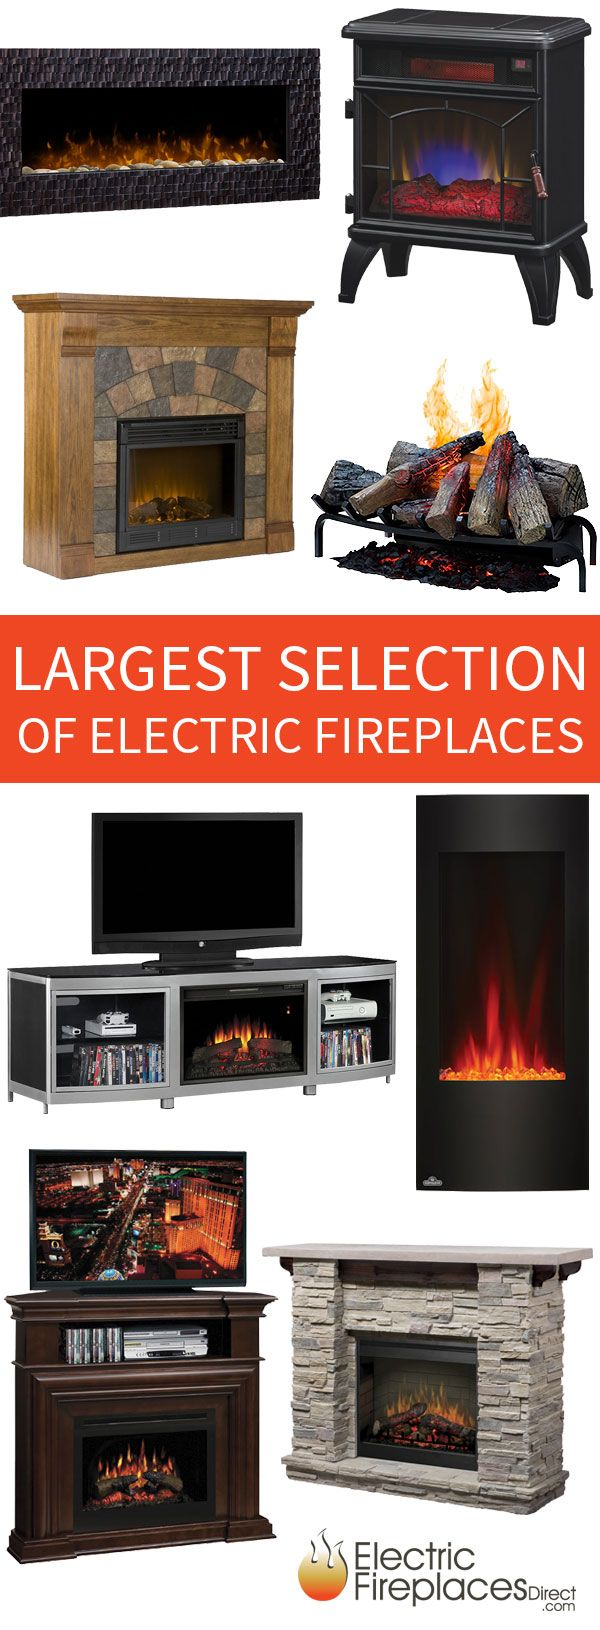 The largest selection of electric fireplace products on the internet including premium wall mounts, TV and Media stands, freestanding stoves, and fireplace inserts from Dimplex, Twin Star, Napoleon, and more. Fast, free shipping! Shop here: http://www.electricfireplacesdirect.com/?utm_source=pinterest&utm_medium=social&utm_campaign=productgallery